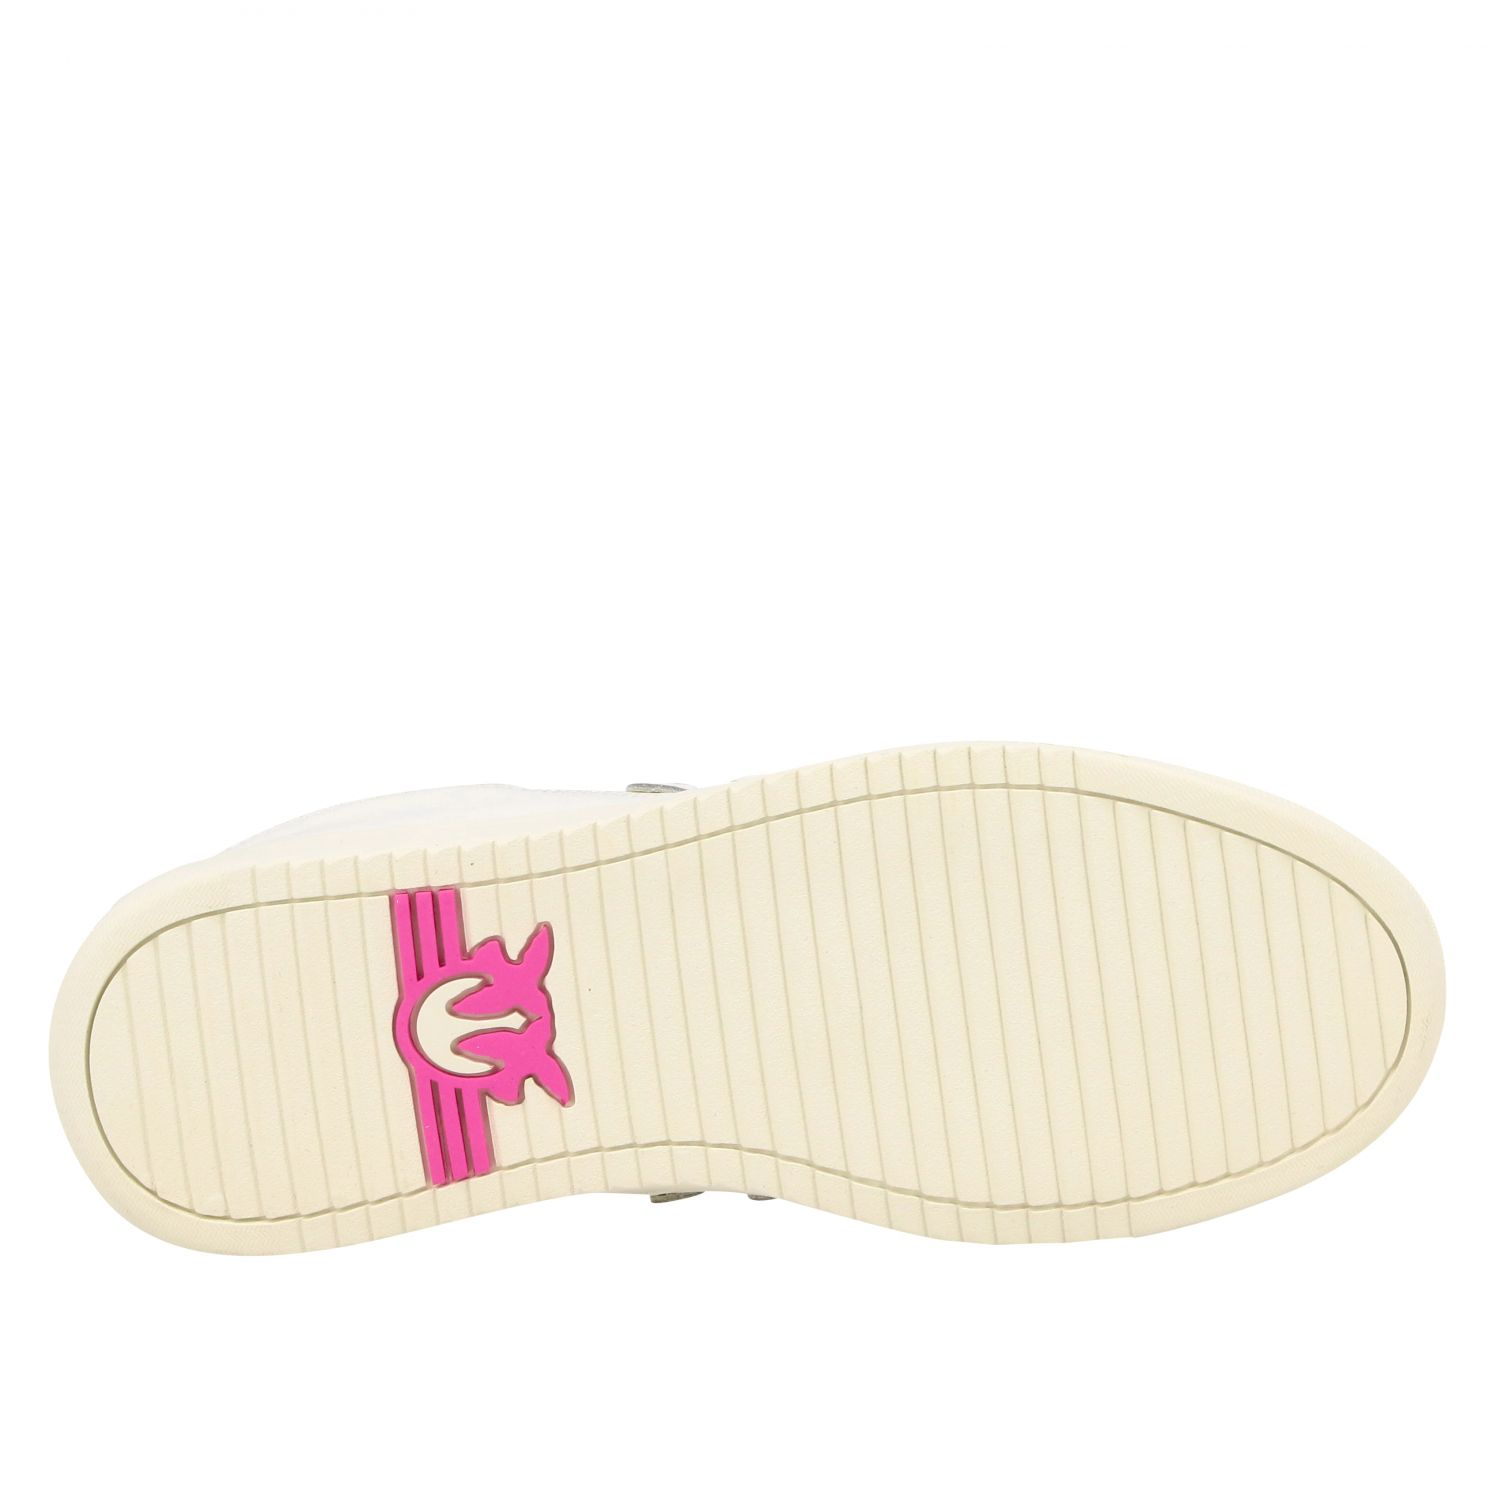 Shoes women Pinko white 6